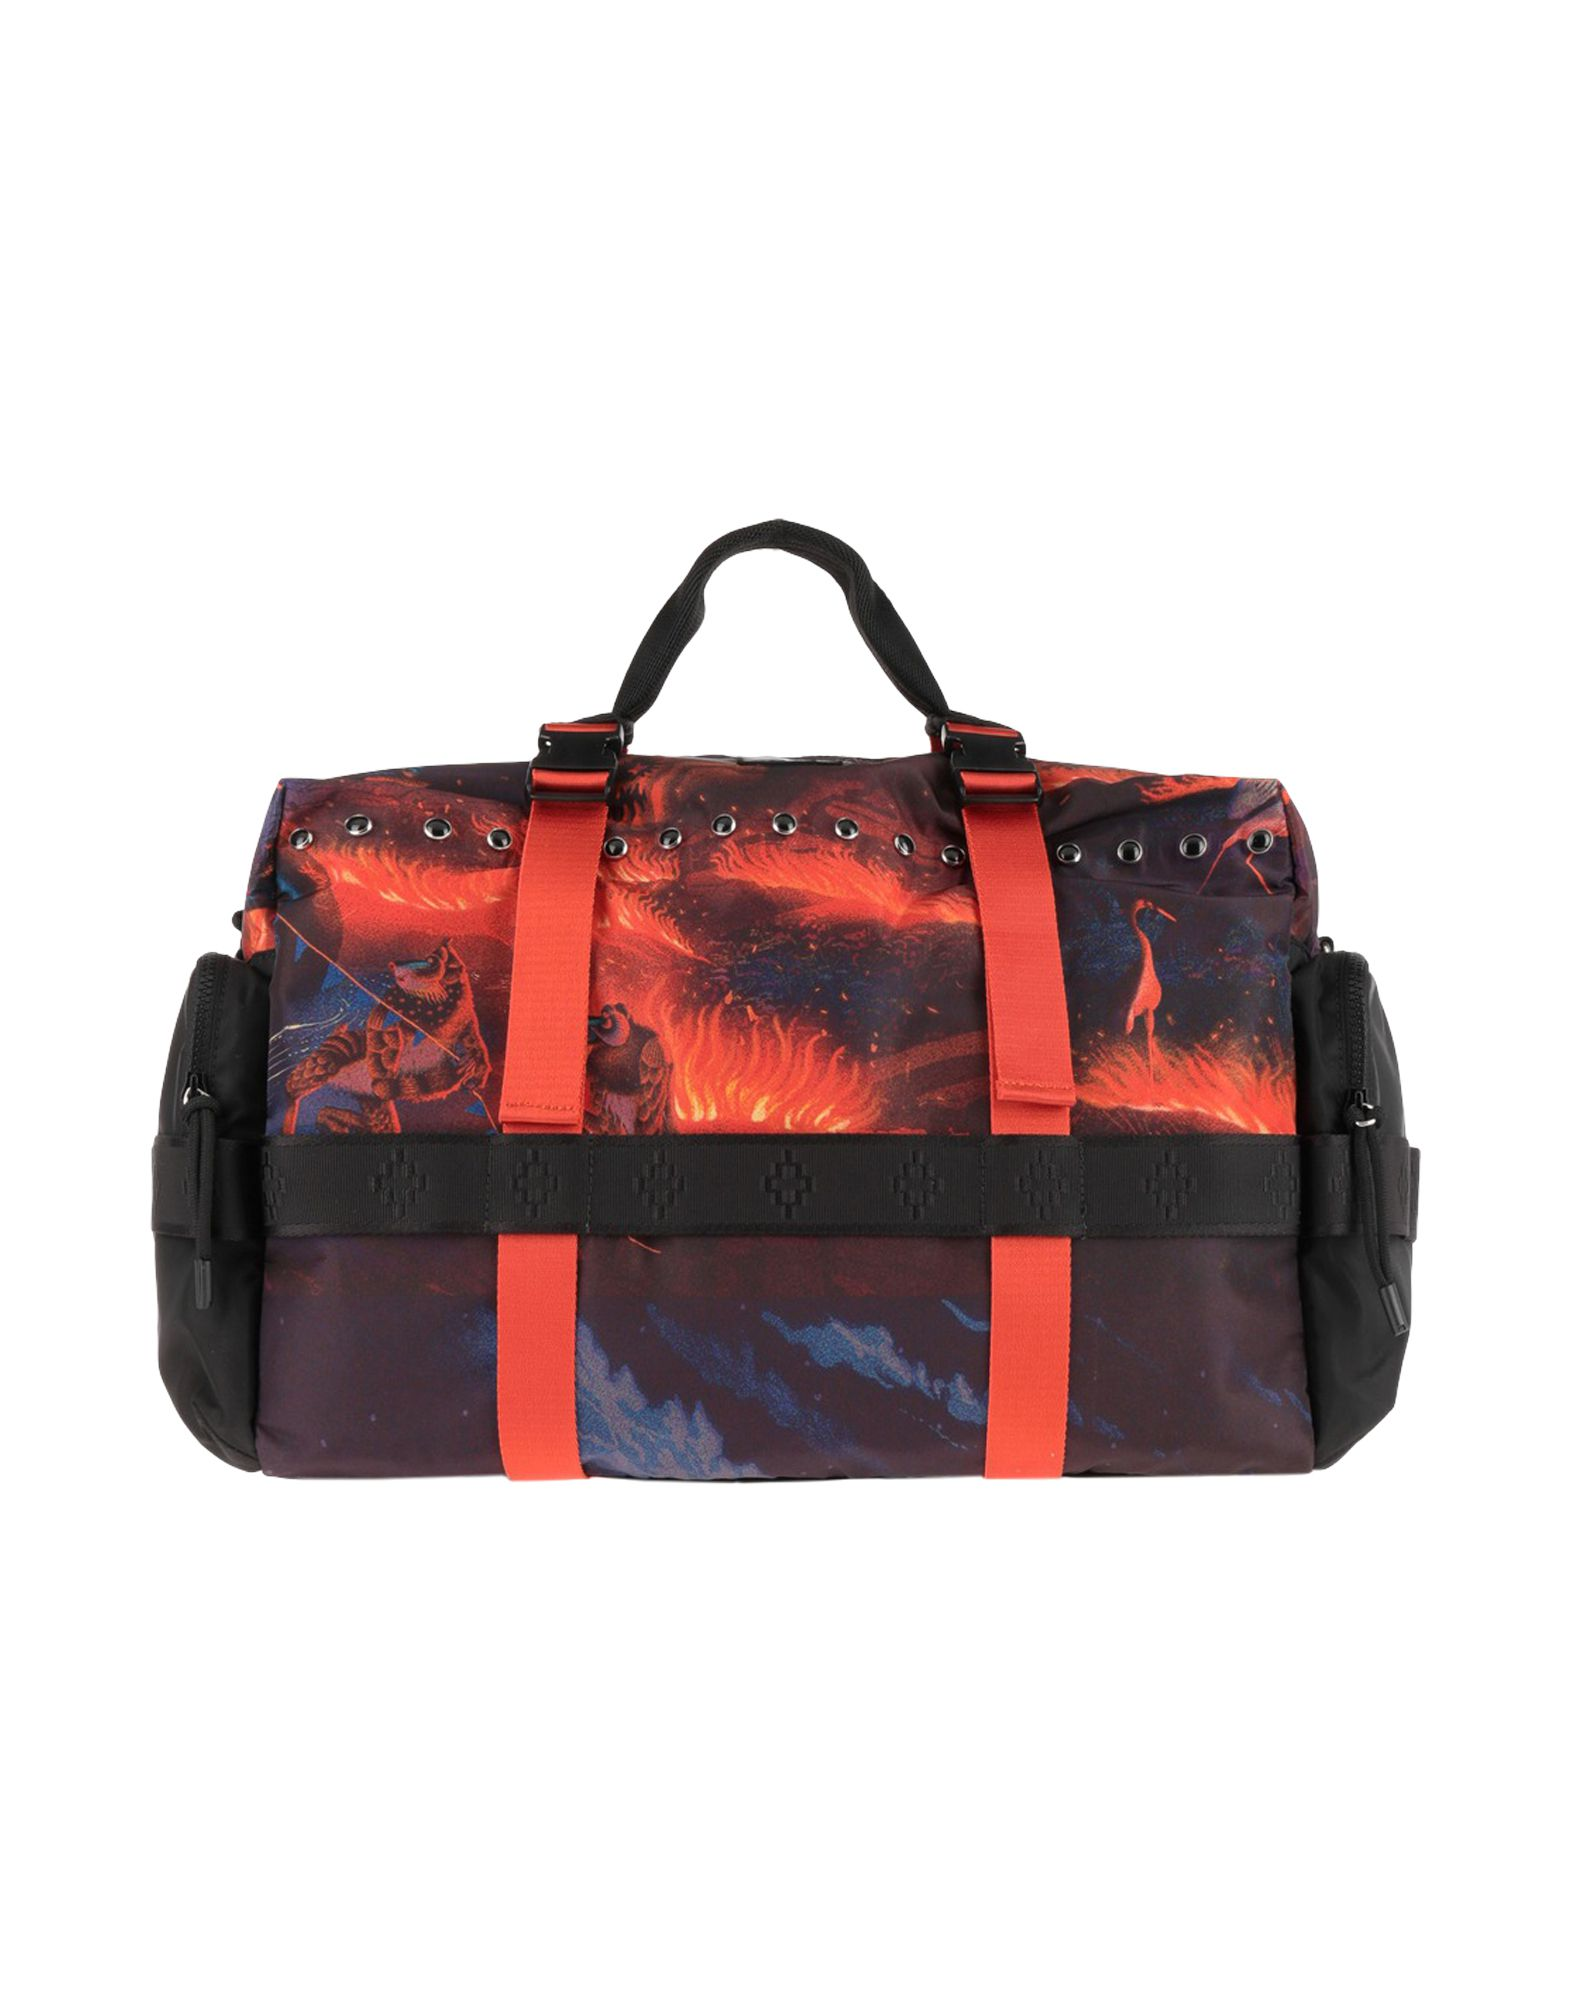 MARCELO BURLON Travel duffel bags. techno fabric, metal applications, logo, multicolor pattern, double handle, fully lined, zipper closure, removable shoulder strap, internal zip pocket, external pockets. 100% Polyester, Metal